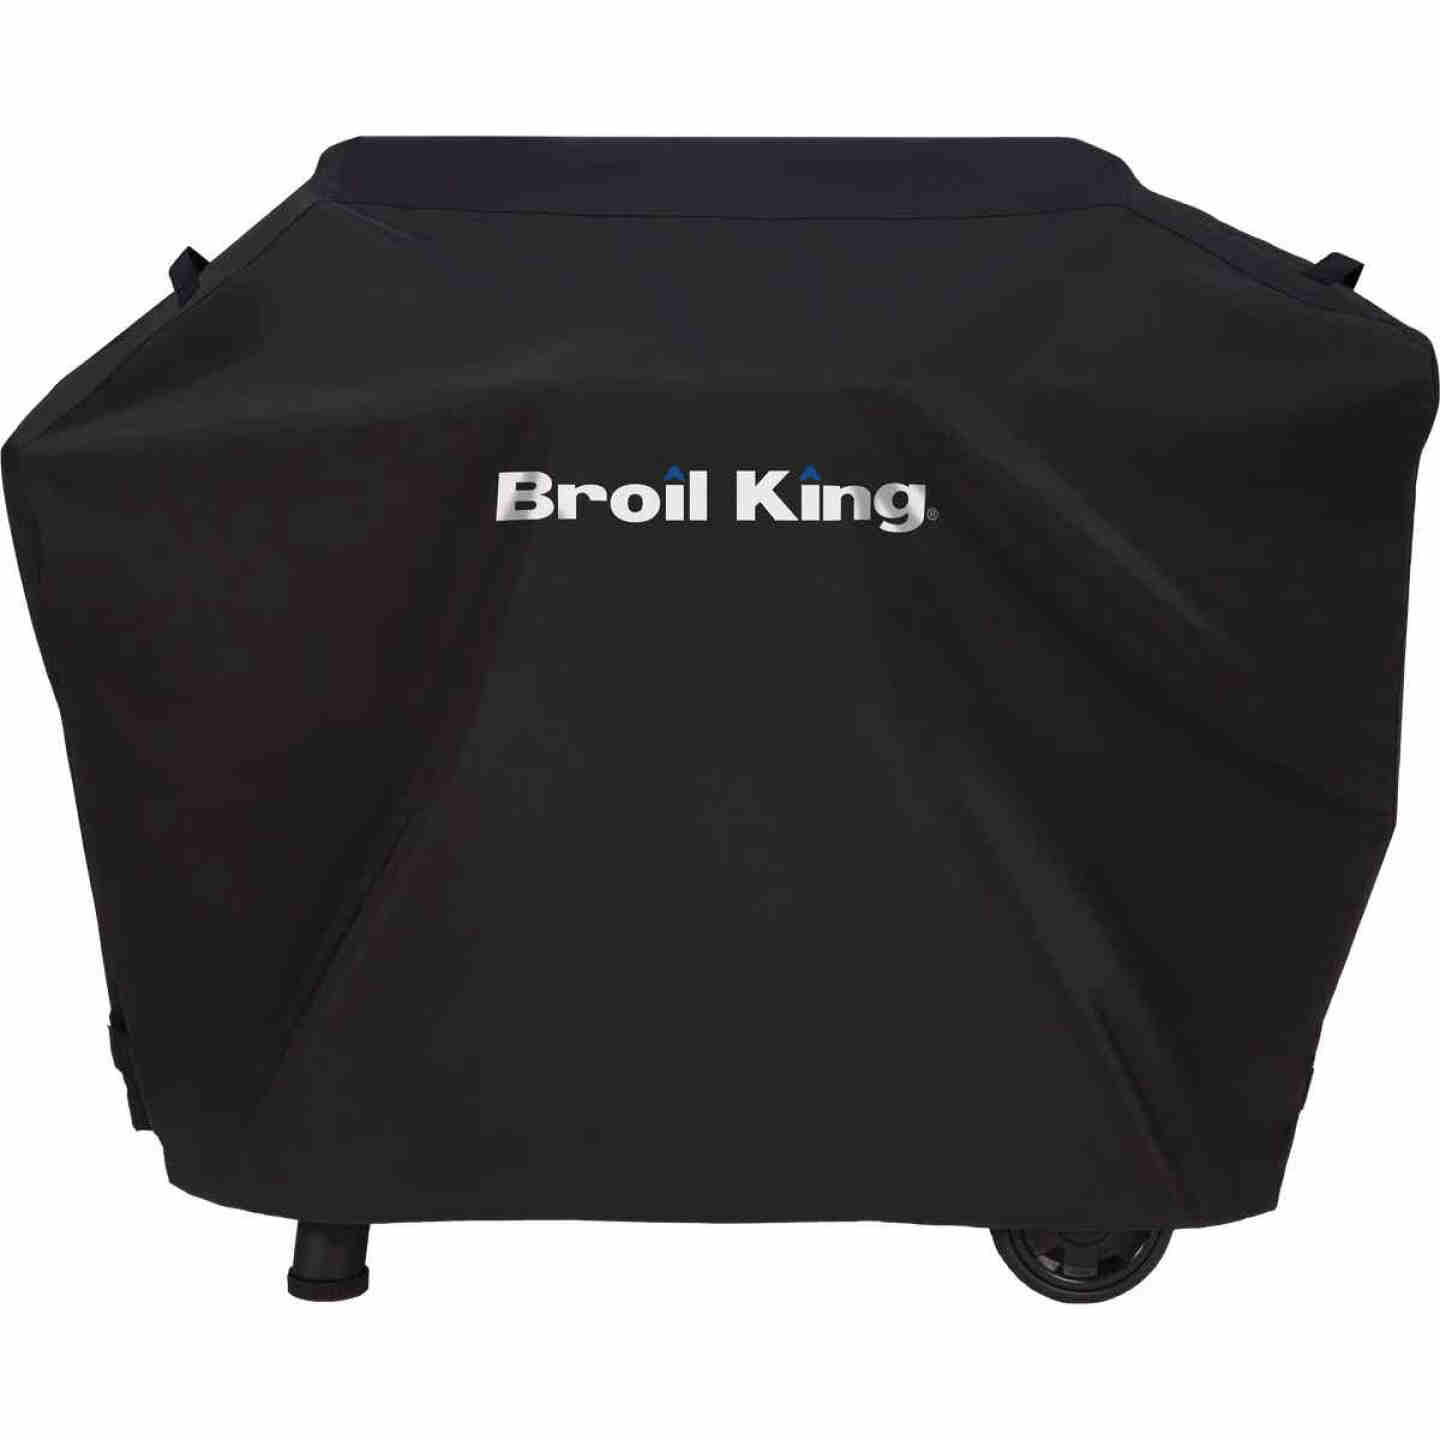 Broil King Baron Pellet 400 42 In. Black Grill Cover Image 3